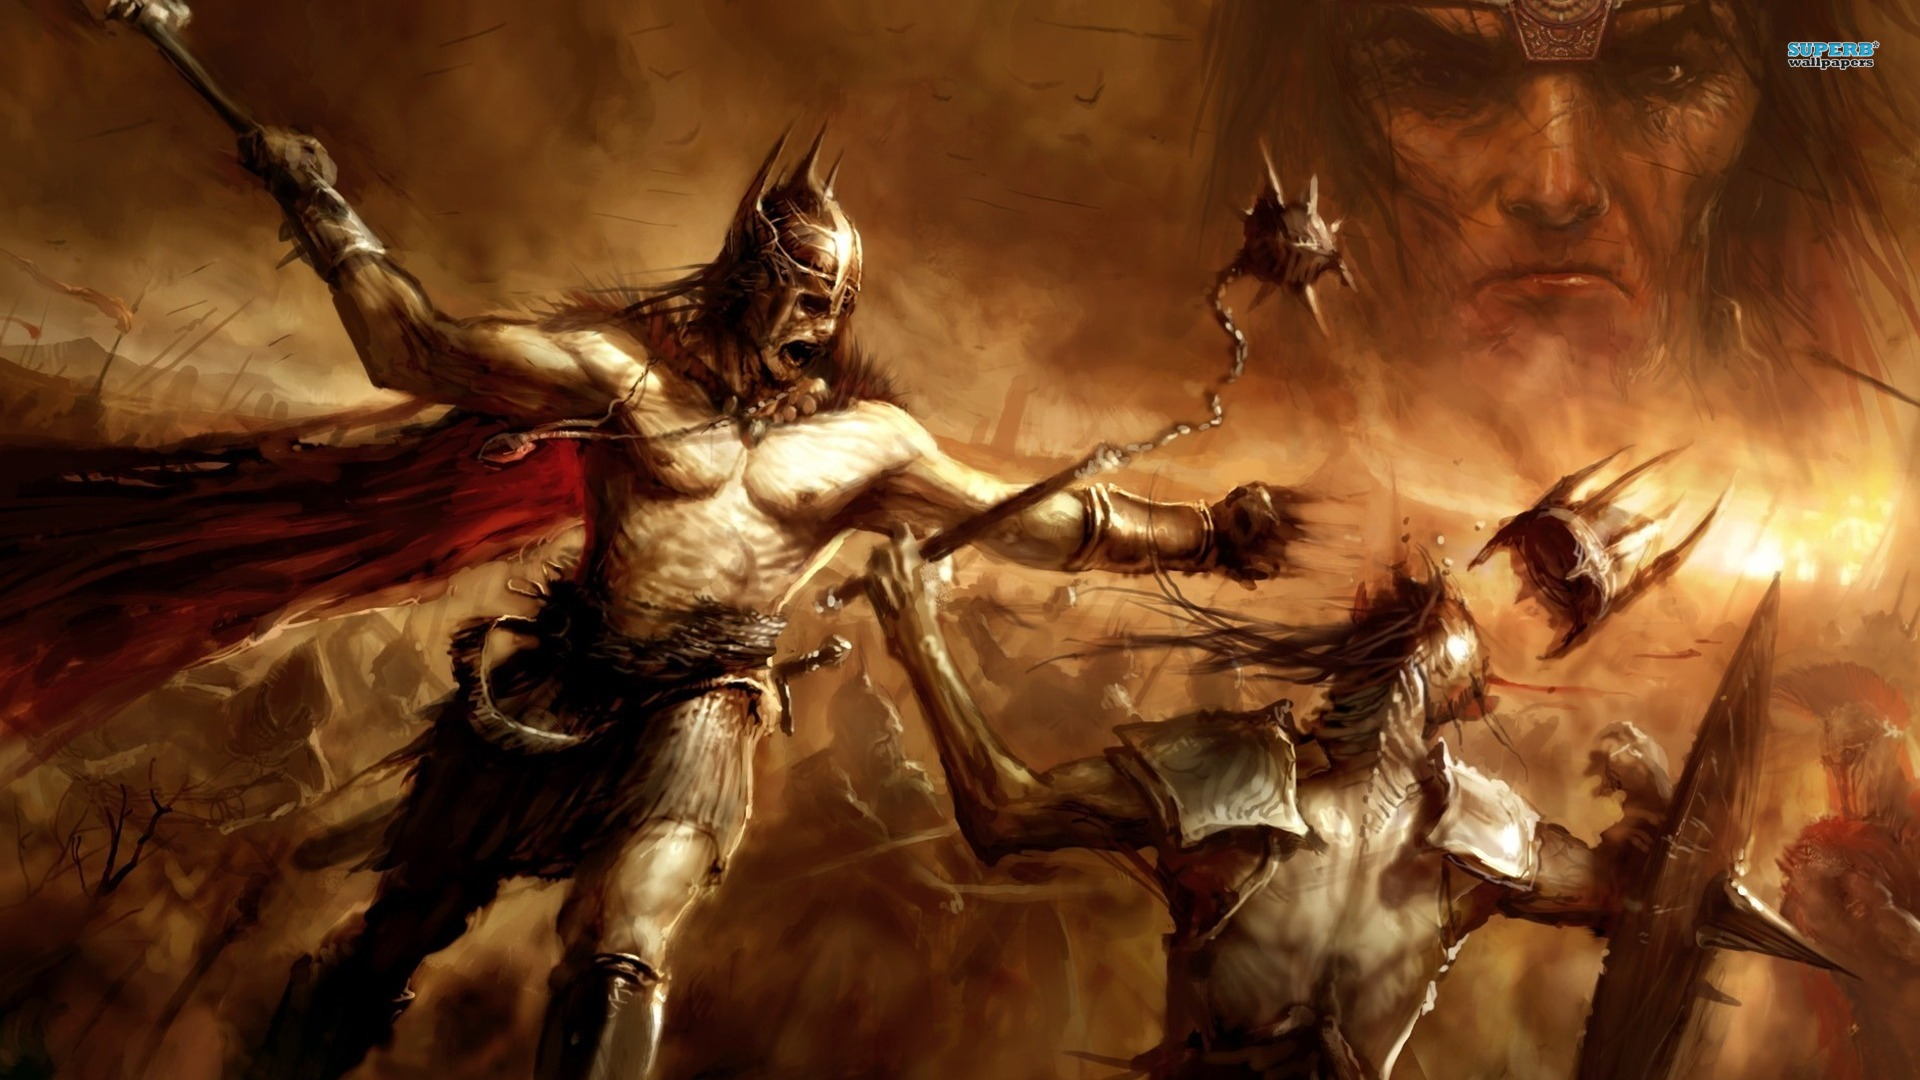 Age of Conan Wallpaper Background 48397 1920x1080